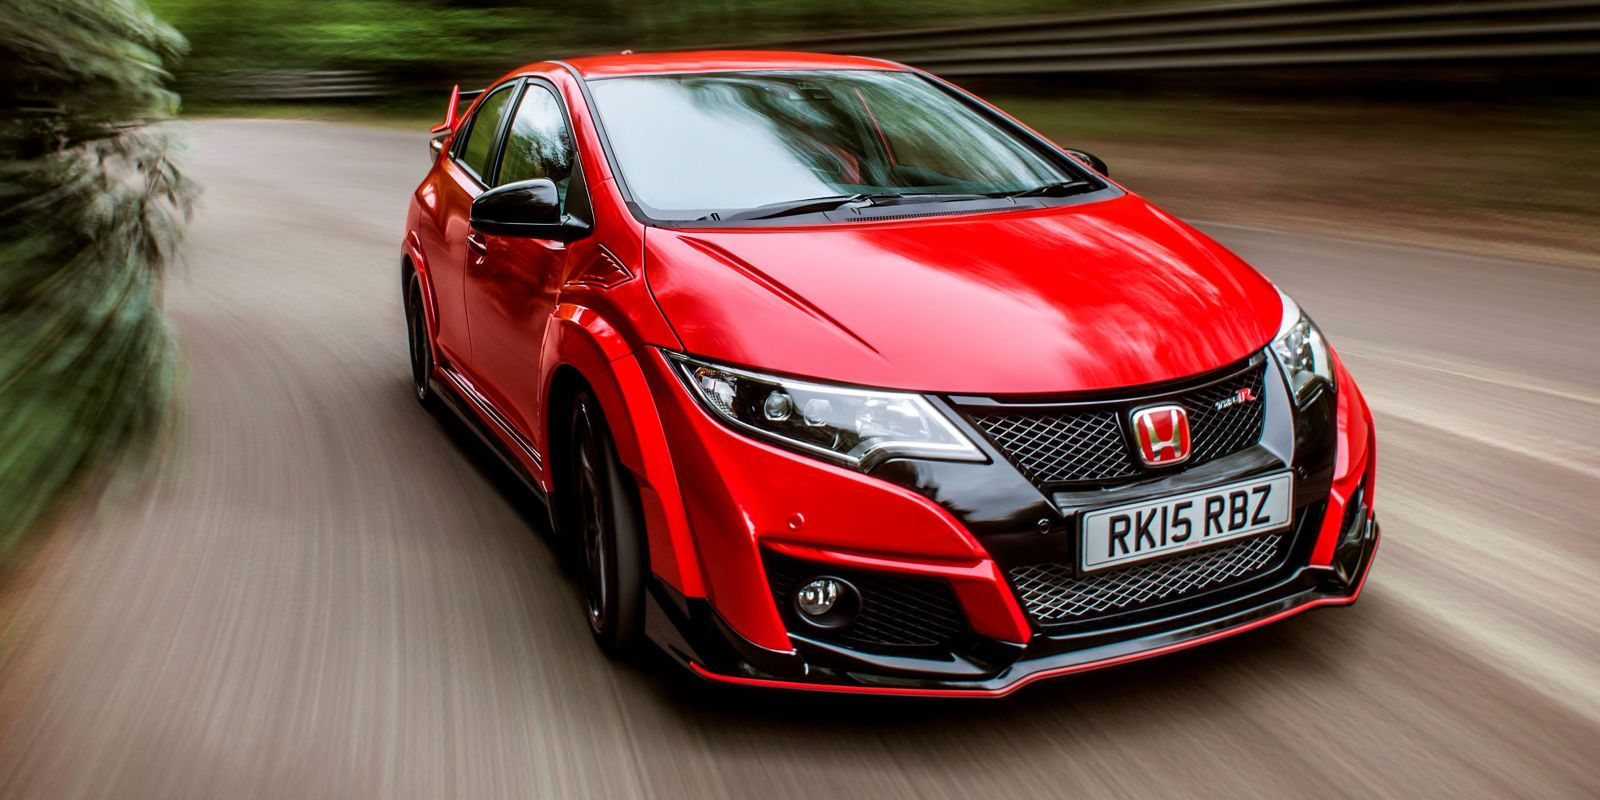 The next honda civic type r could make 340 horsepower says a rumor